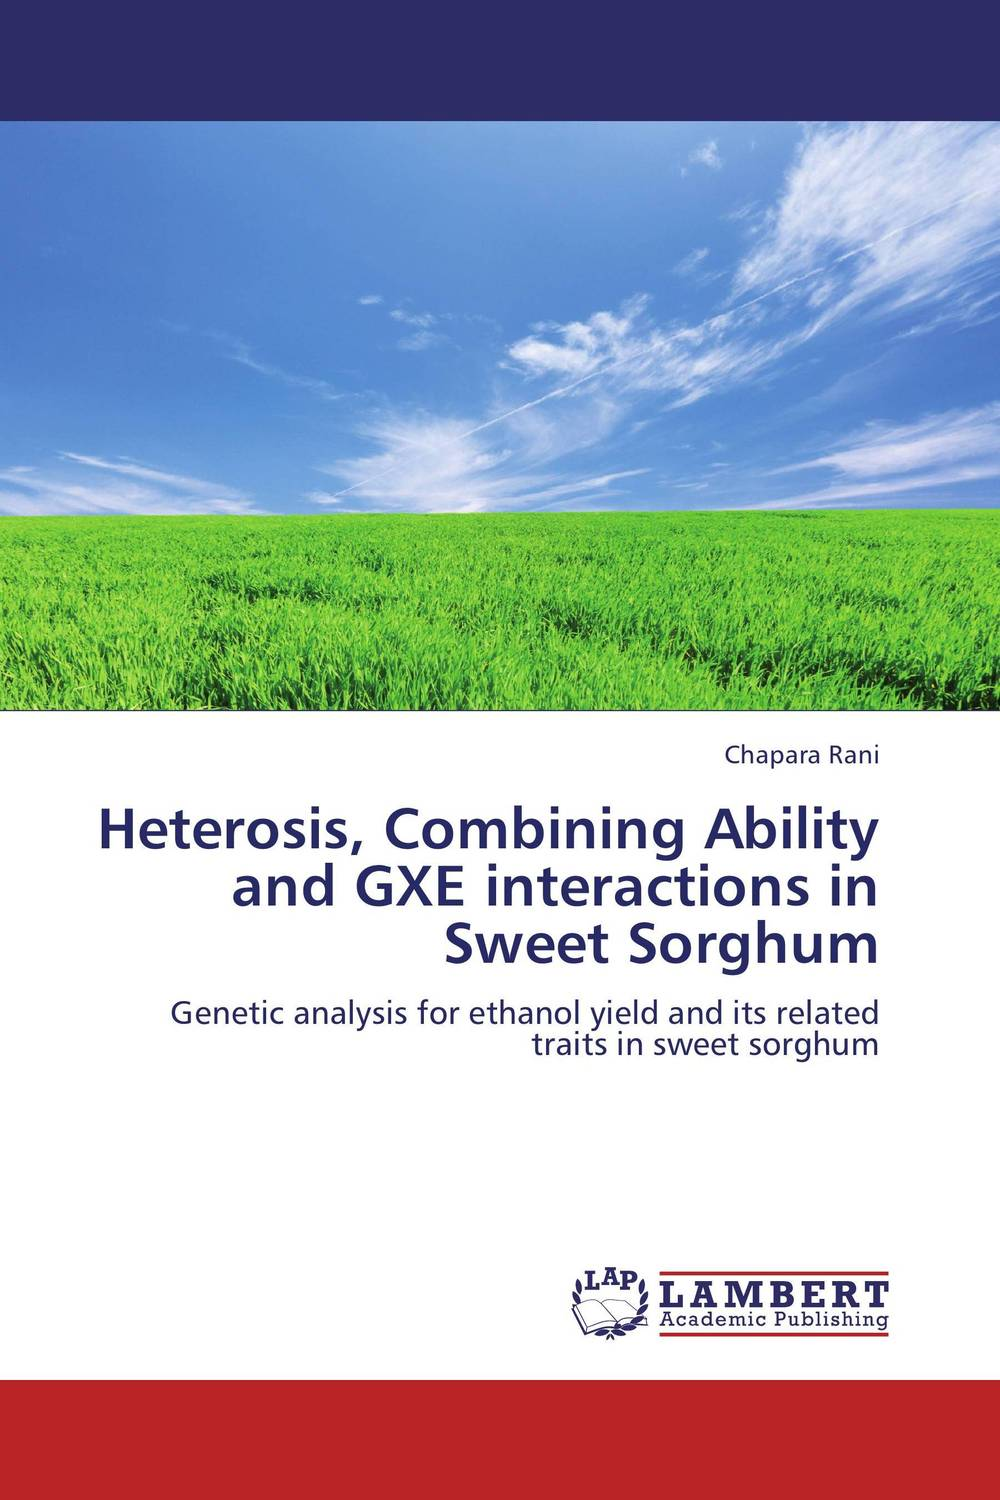 Heterosis, Combining Ability and GXE interactions in Sweet Sorghum sadat khattab usama abdul raouf and tsutomu kodaki bio ethanol for future from woody biomass